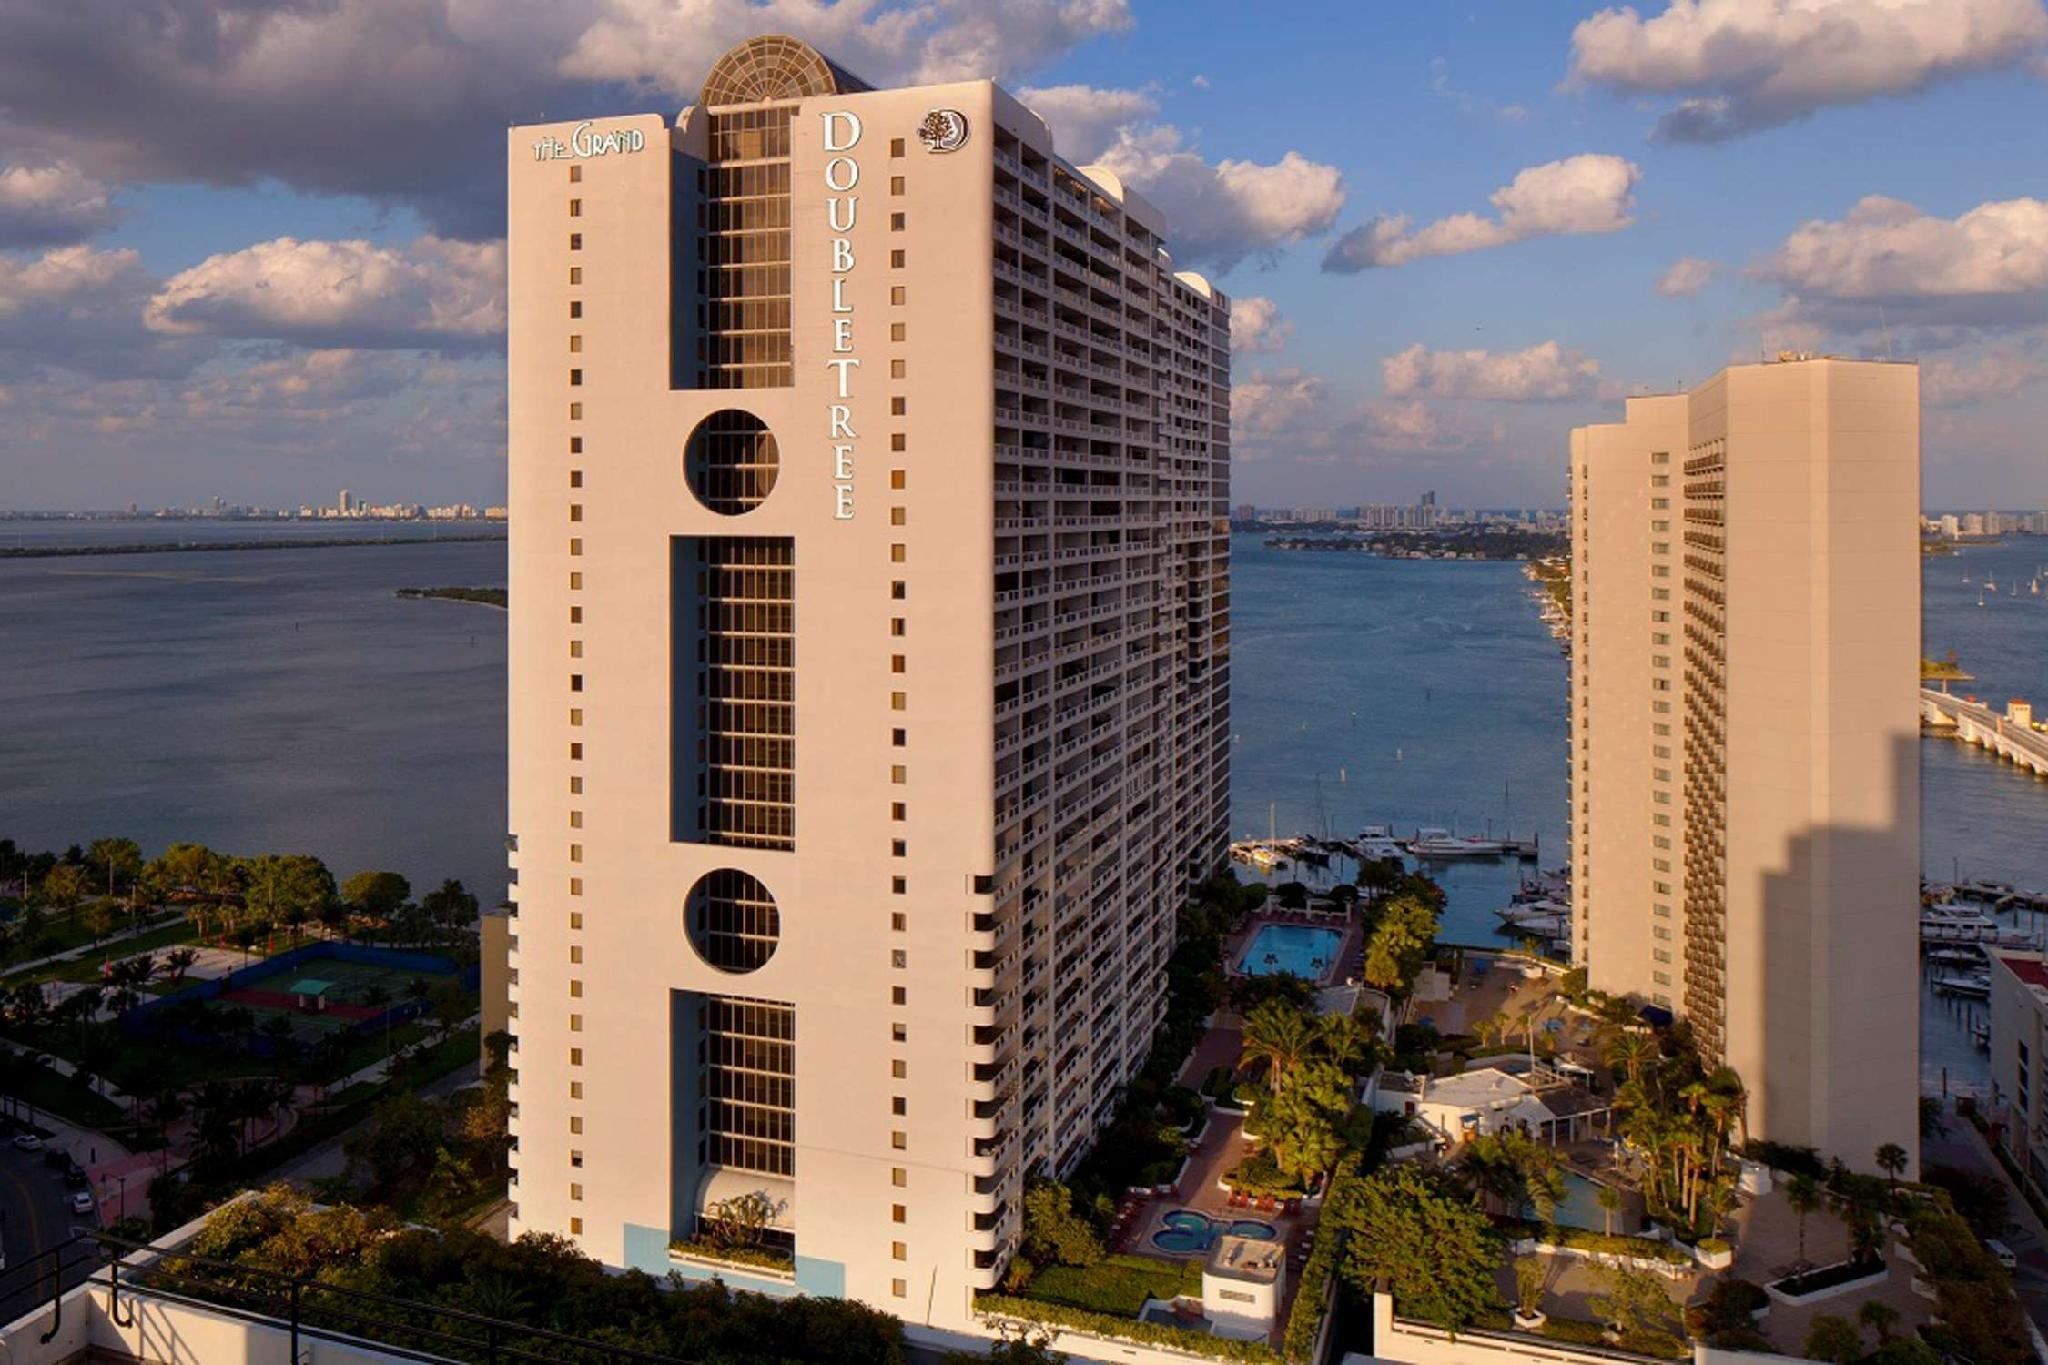 Doubletree Grand Hotel Biscayne Bay image